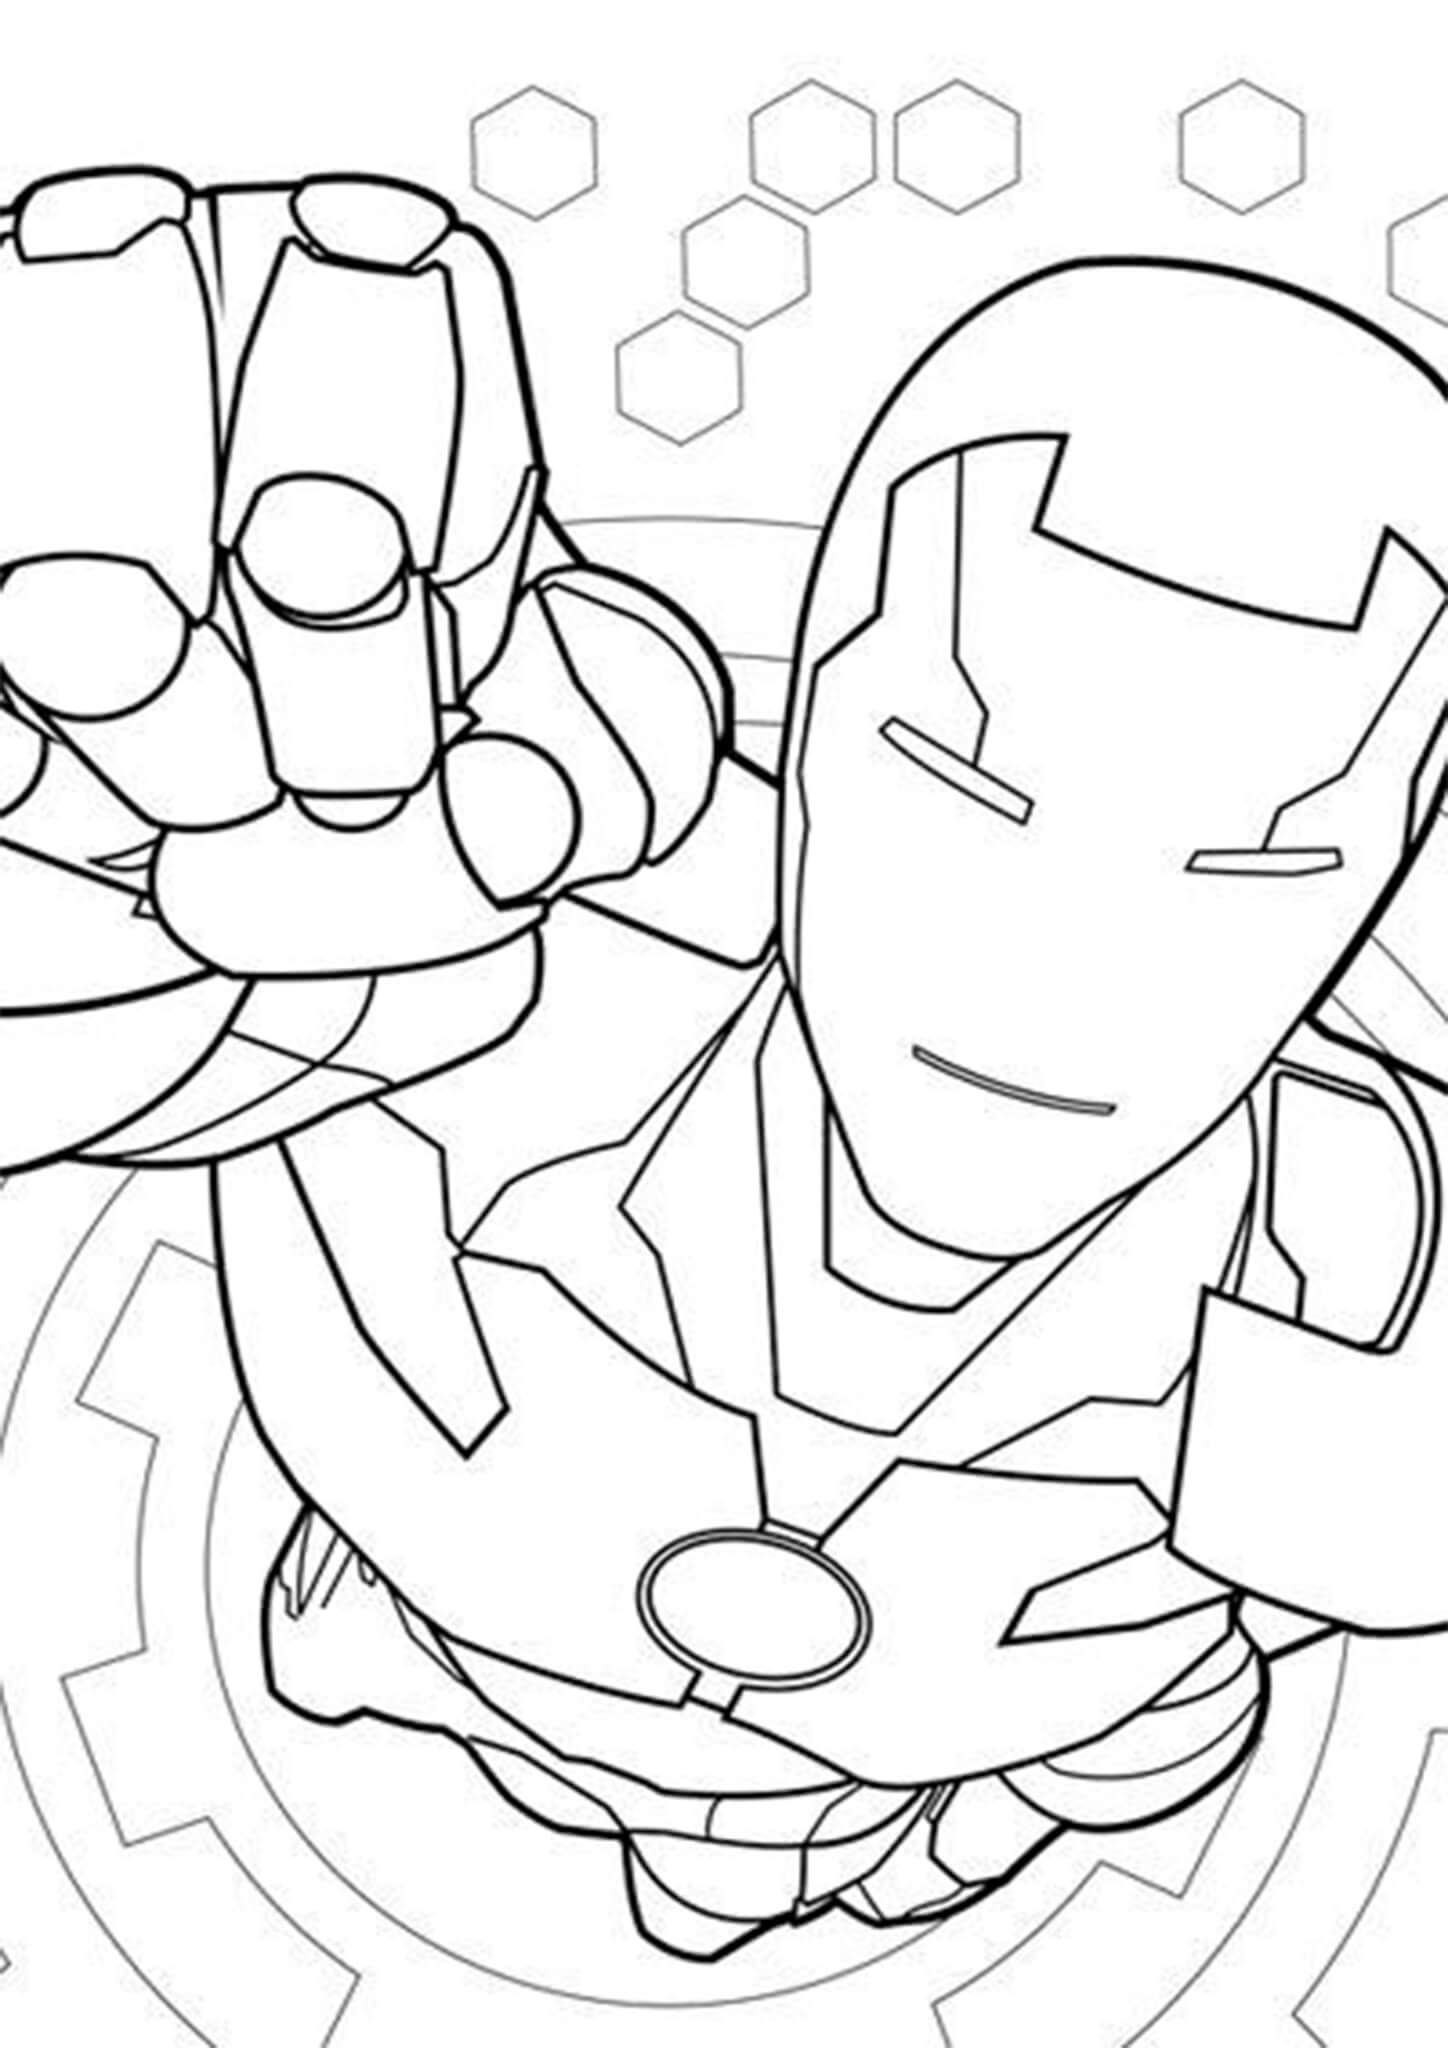 Free Easy To Print Iron Man Coloring Pages Superhero Coloring Pages Avengers Coloring Pages Cool Coloring Pages